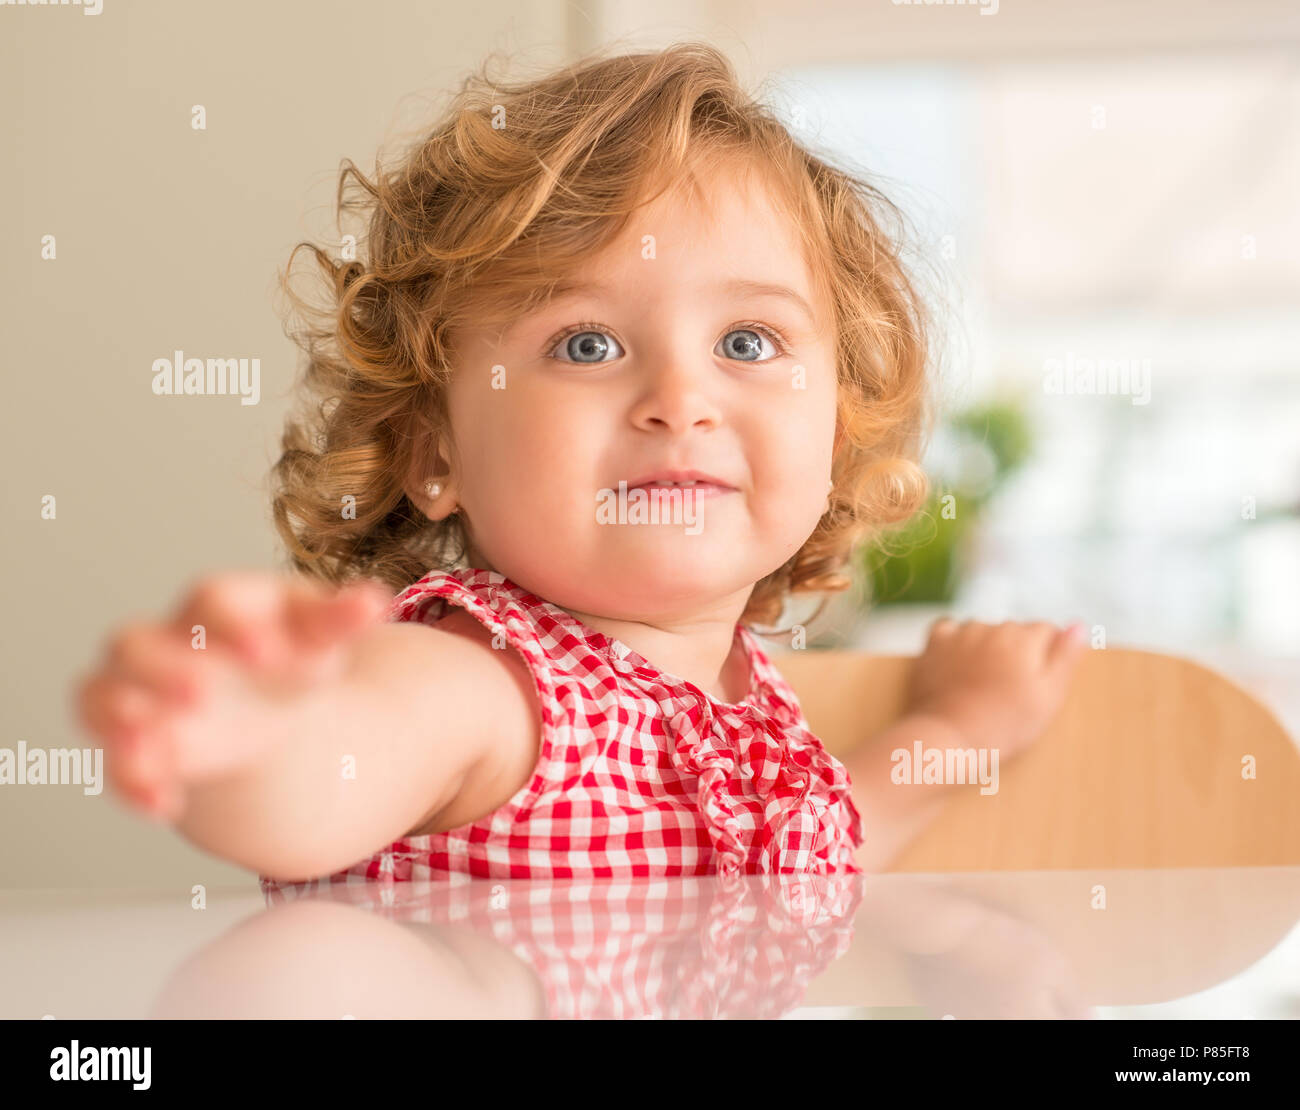 Beautiful blond child smiling asking for hold, wanting attention at home. - Stock Image